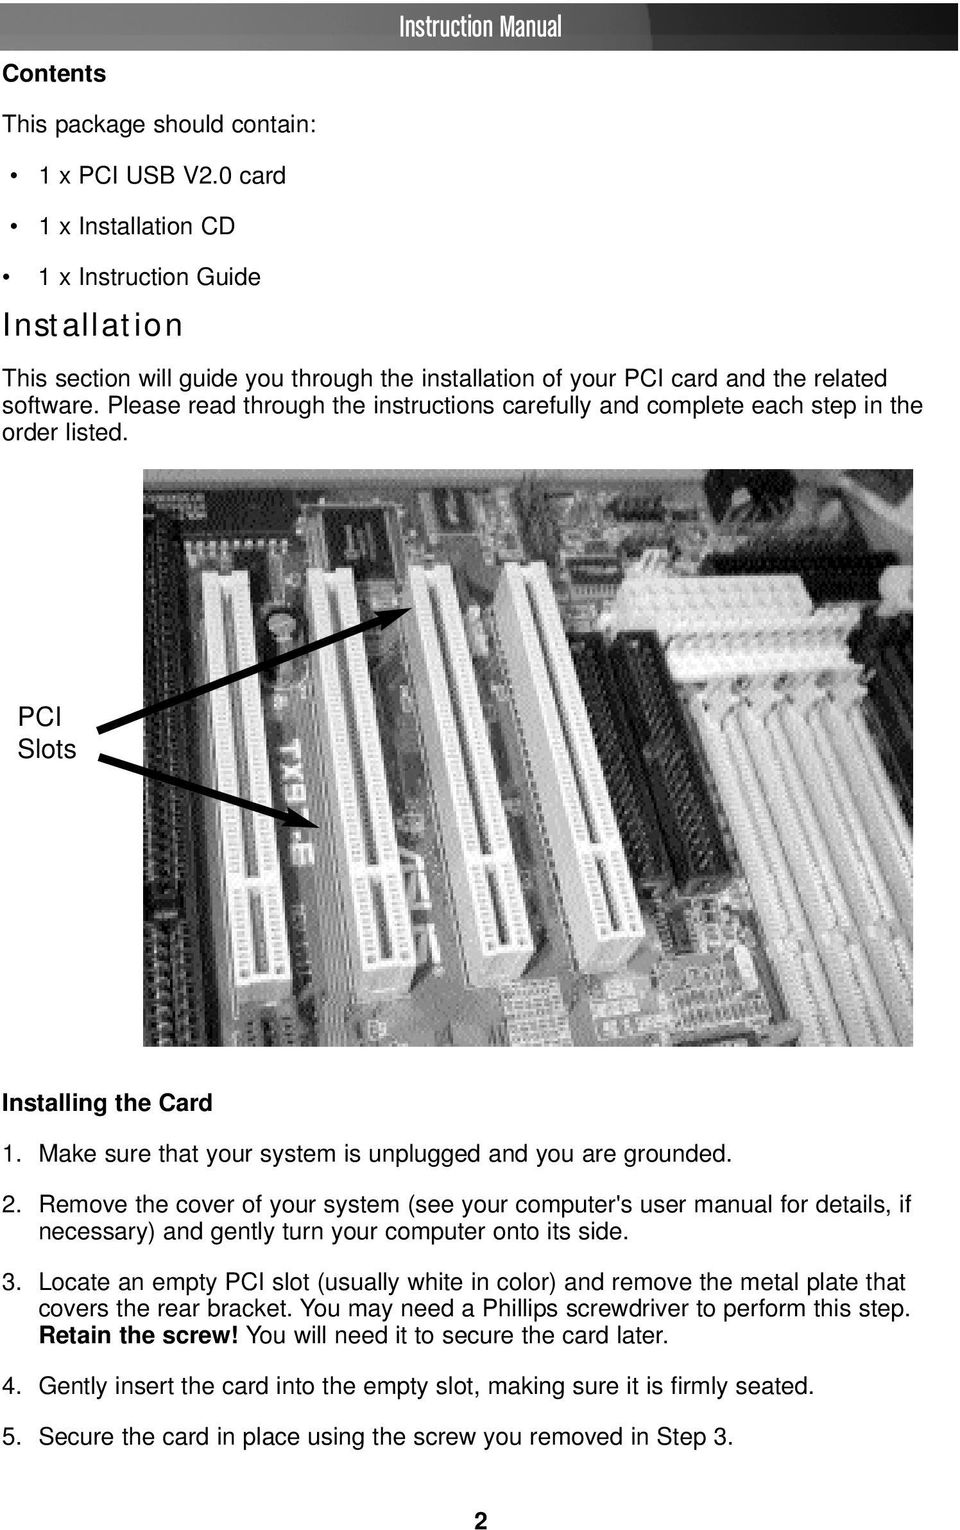 Please read through the instructions carefully and complete each step in the order listed. PCI Slots Installing the Card 1. Make sure that your system is unplugged and you are grounded. 2.